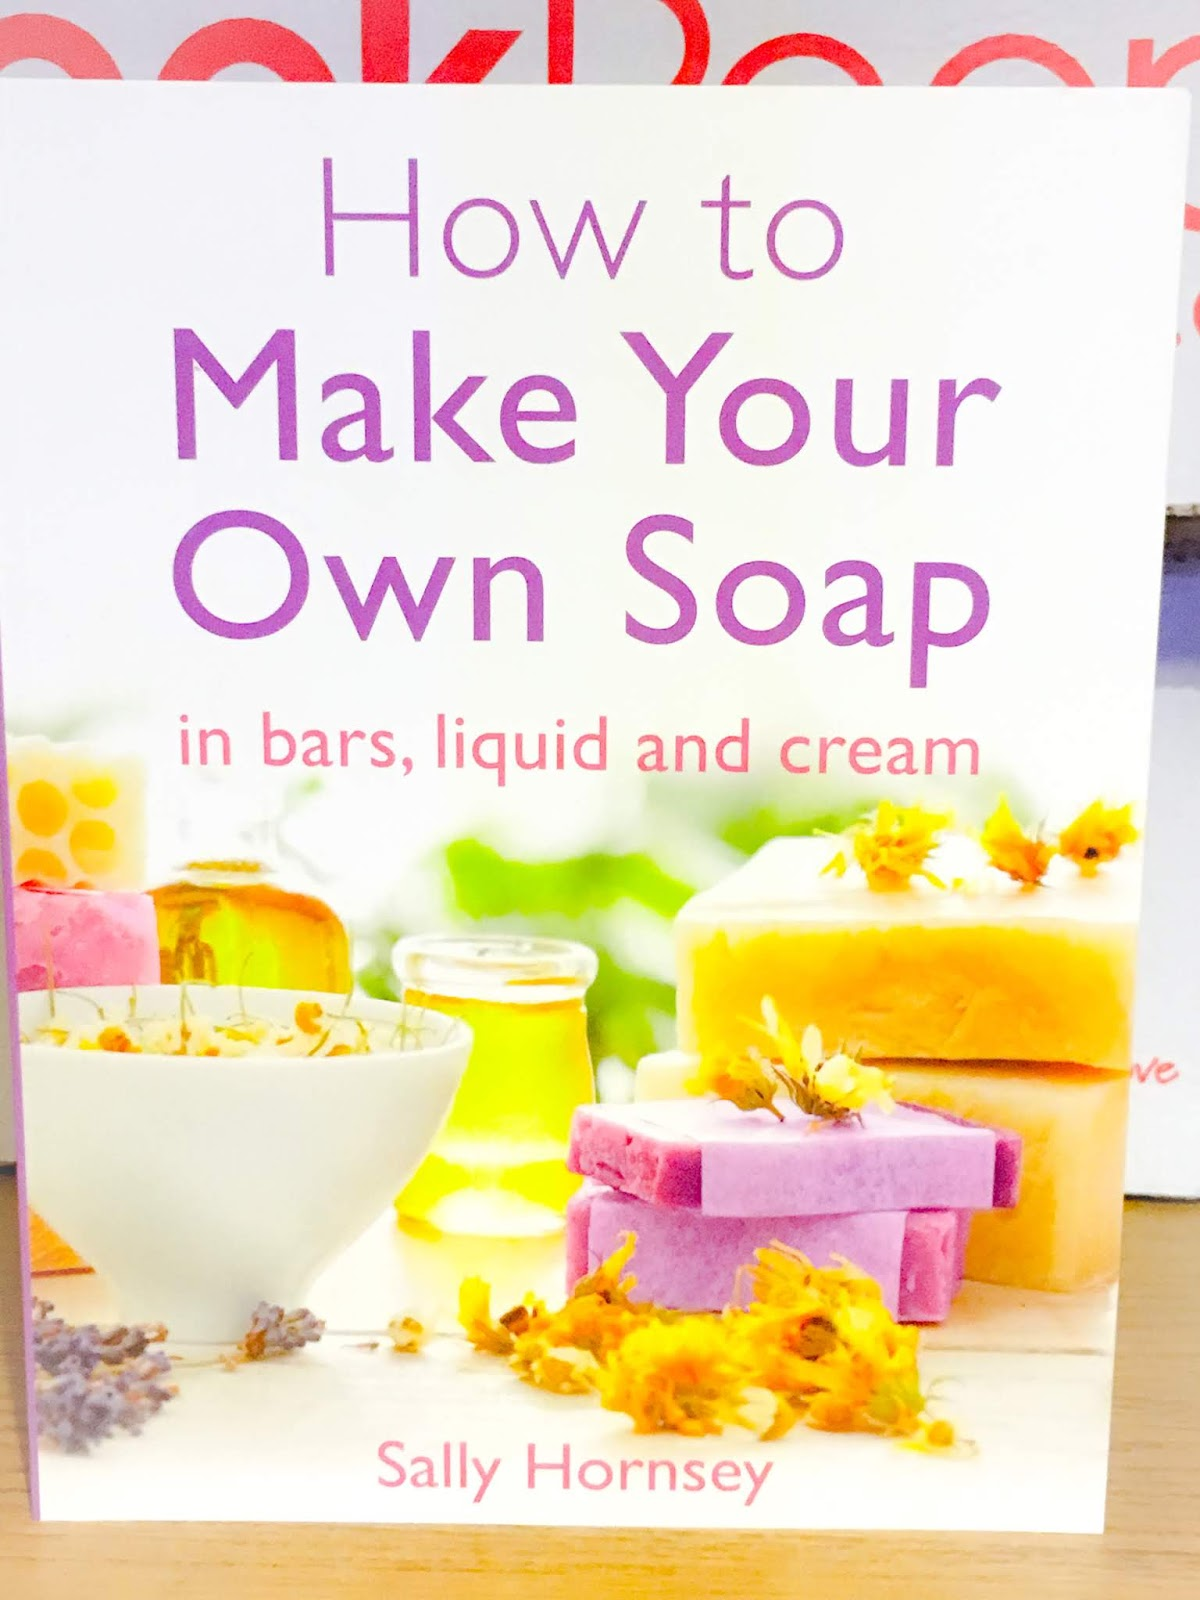 How To Make Your Own Soap front cover